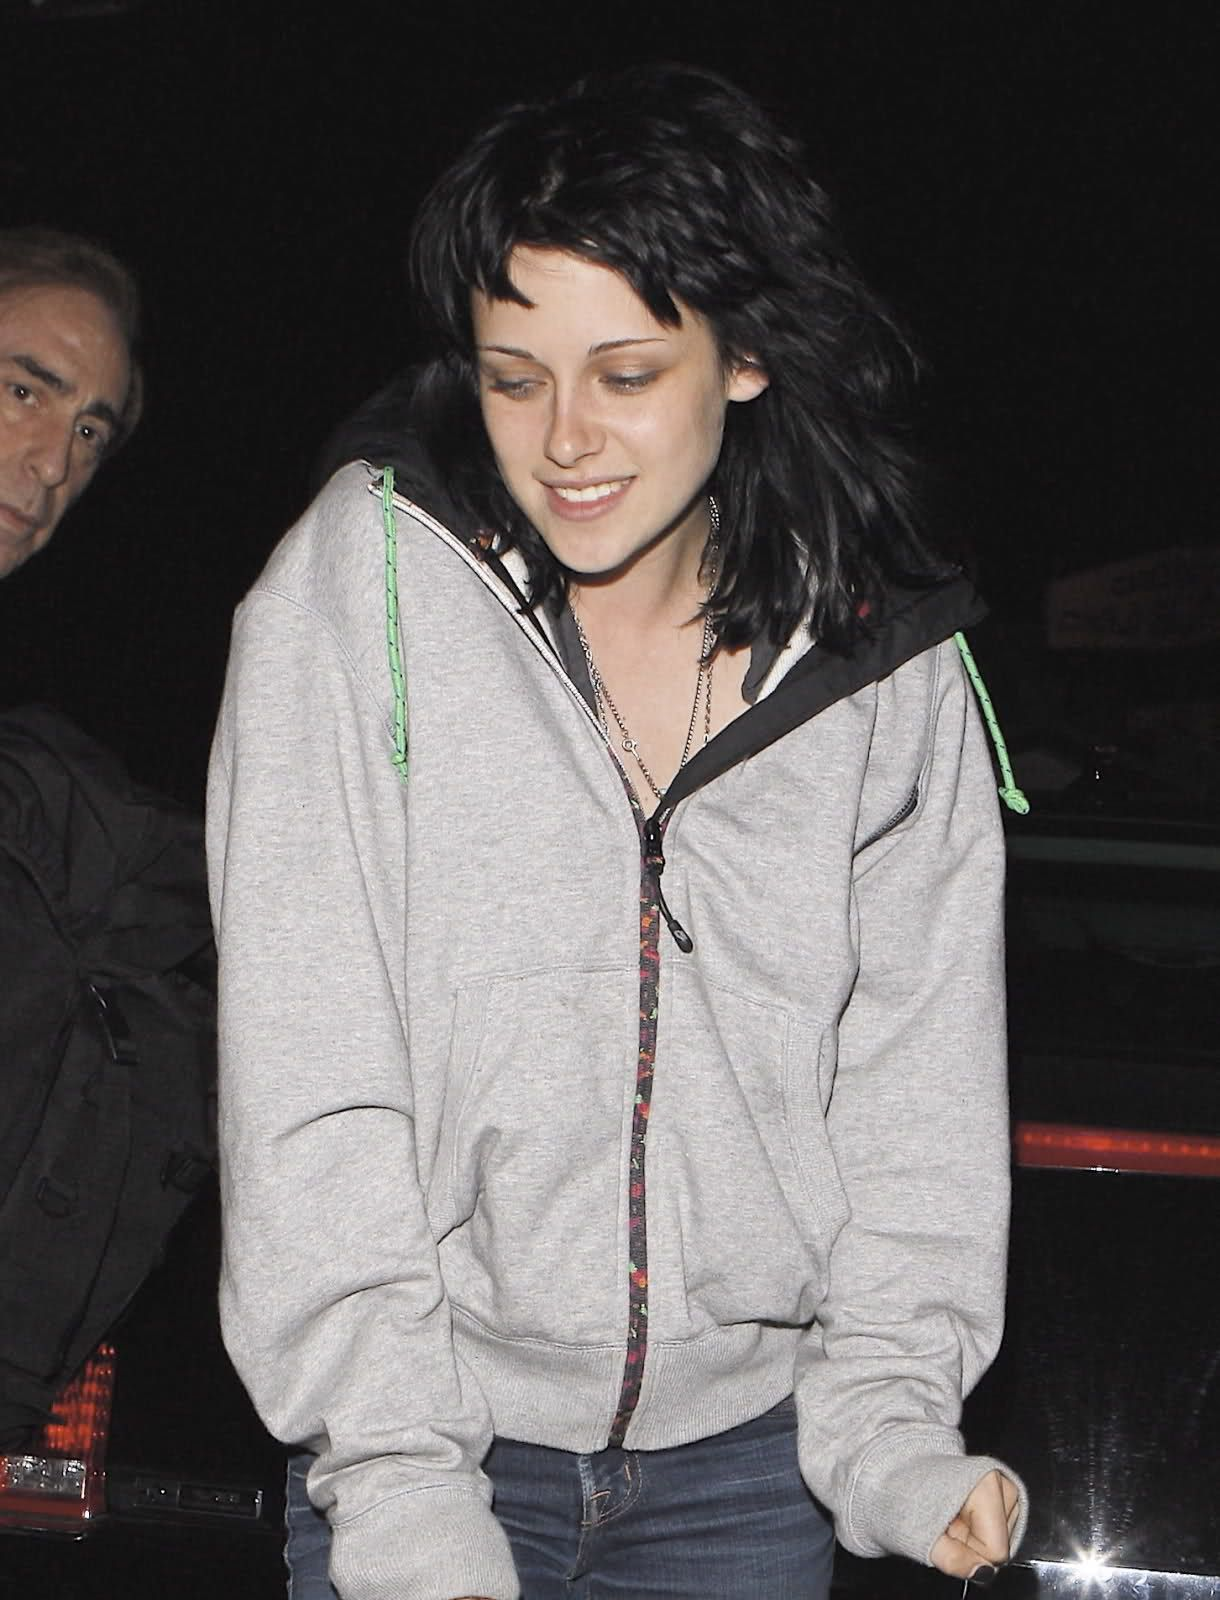 Kristen Stewart out in June 2009